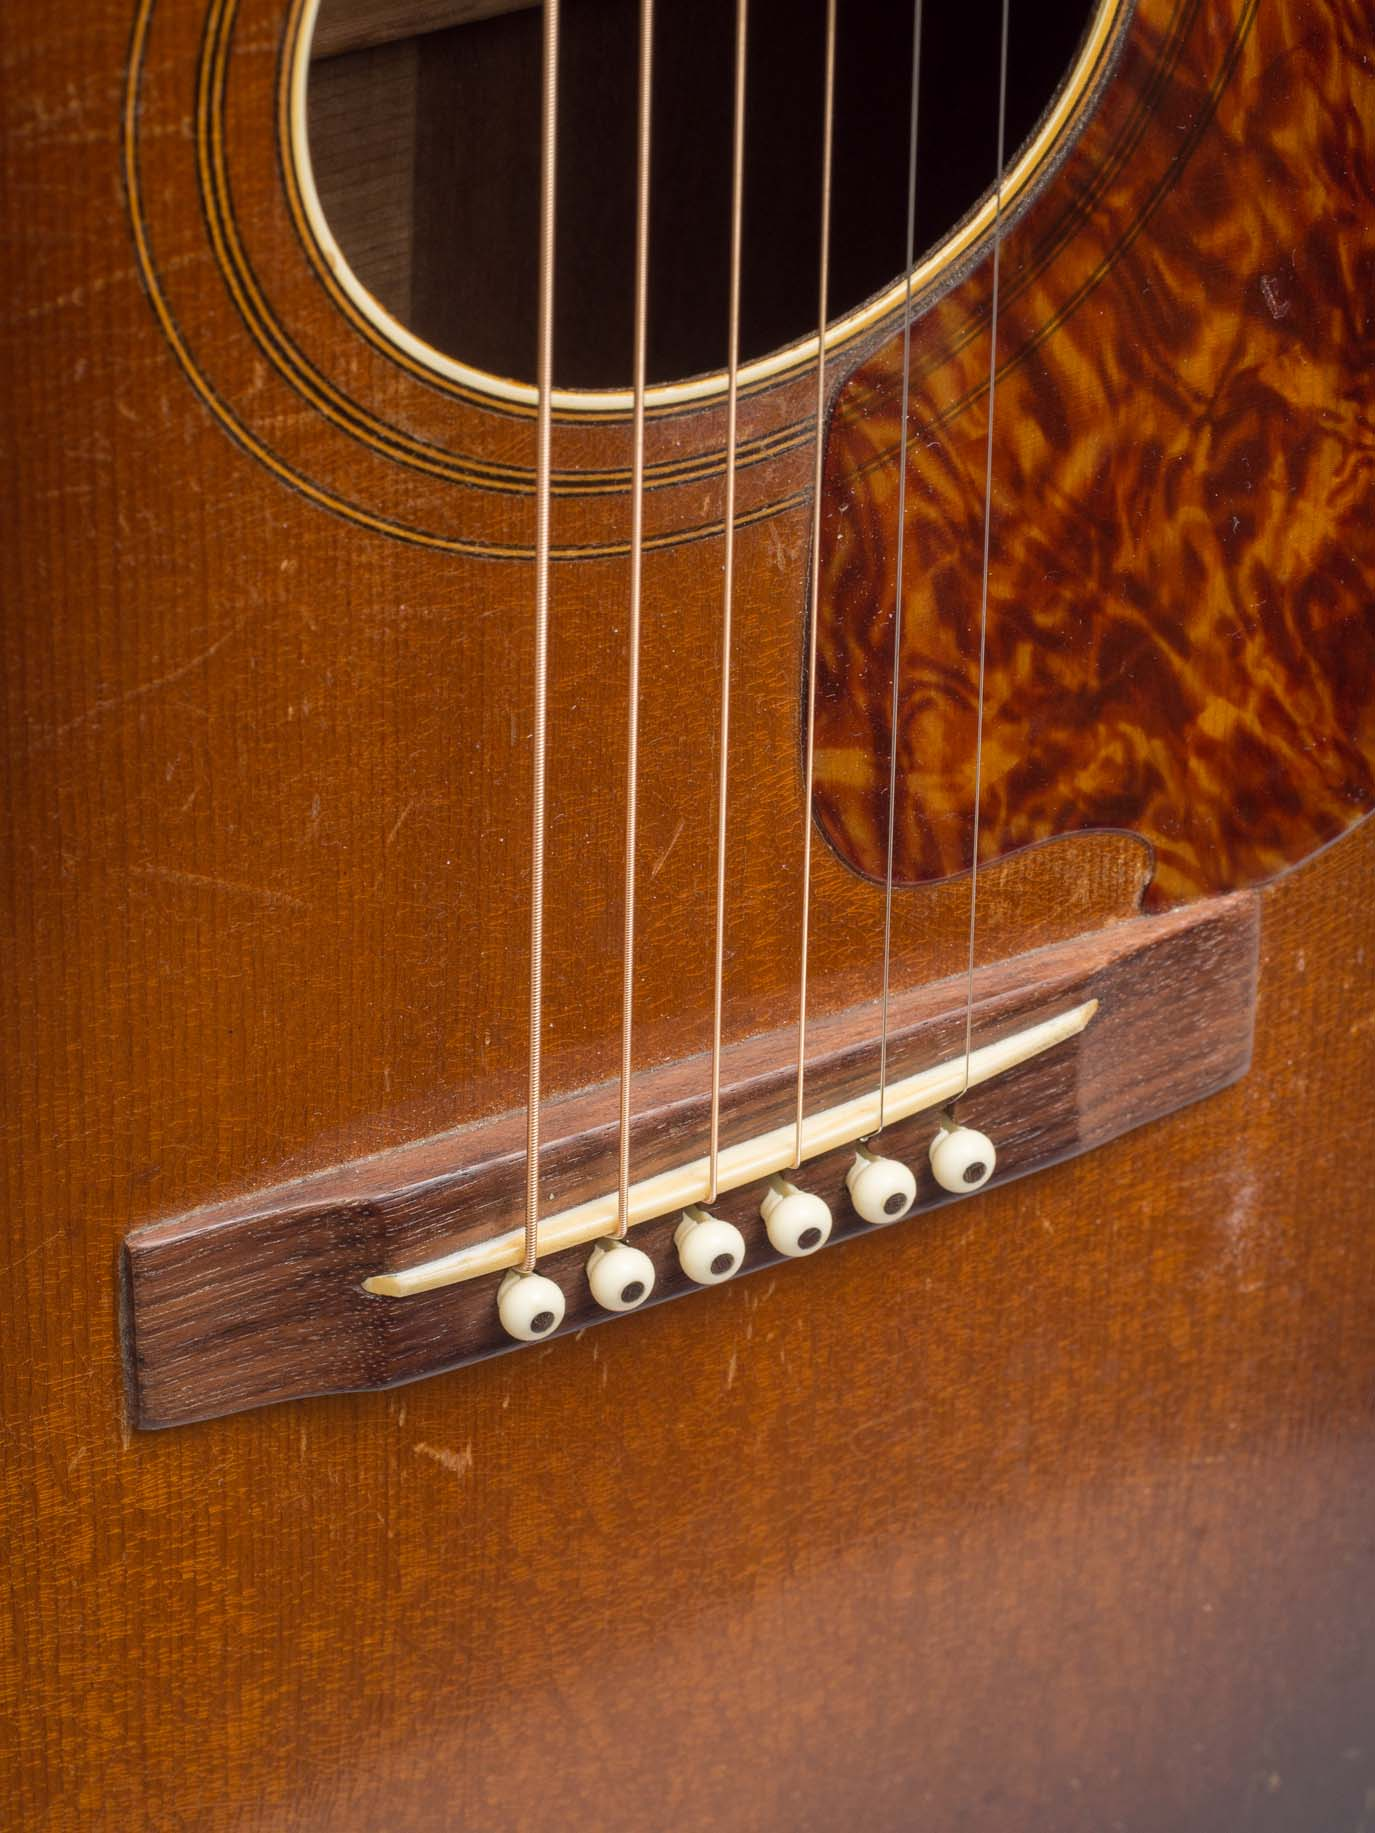 c. 1939 Bacon and Day Senorita S-1